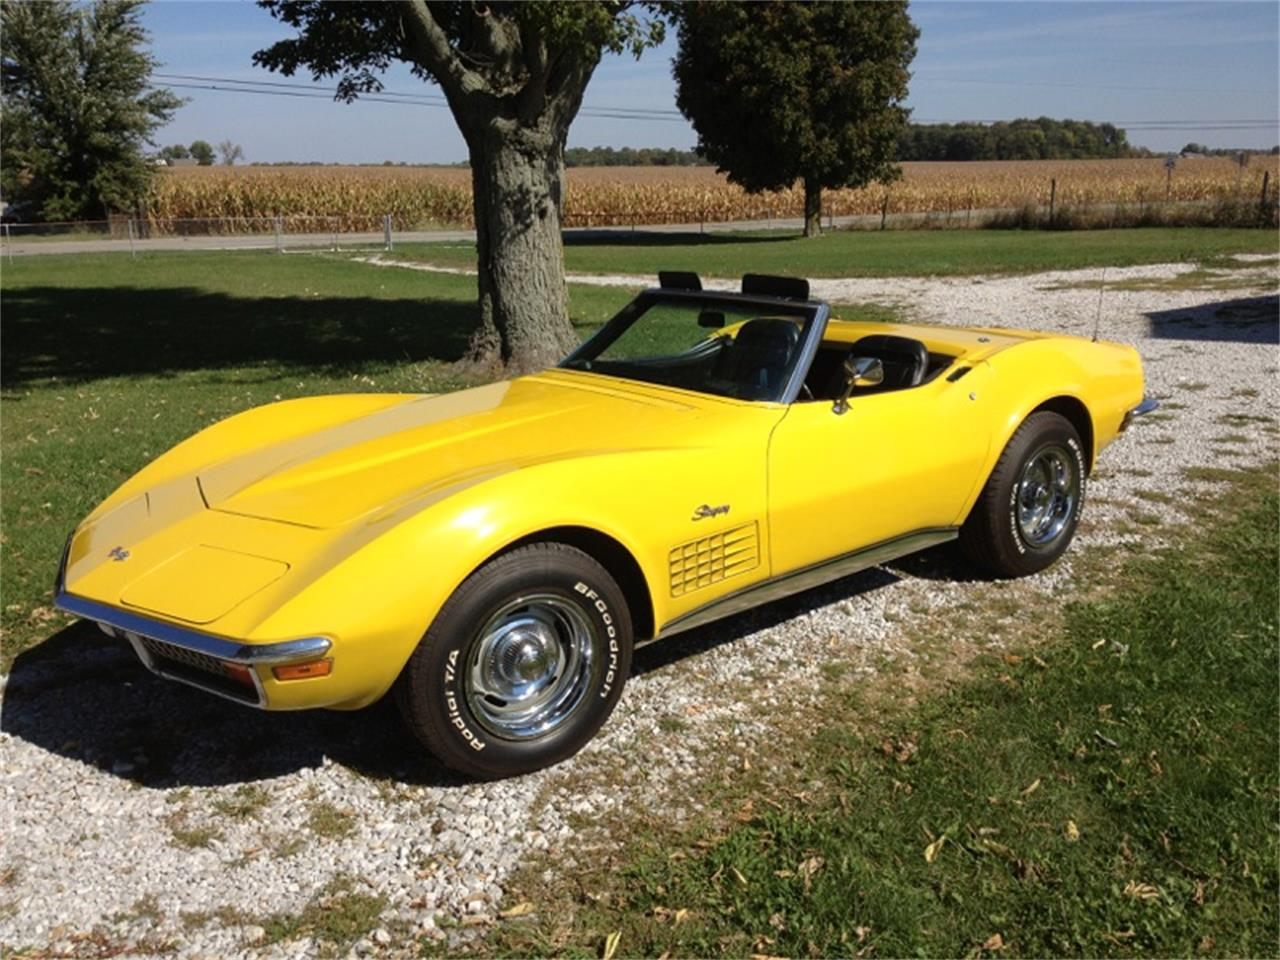 Large Picture of 1972 Chevrolet Corvette located in Alexandria Indiana - $28,000.00 Offered by a Private Seller - JLV4